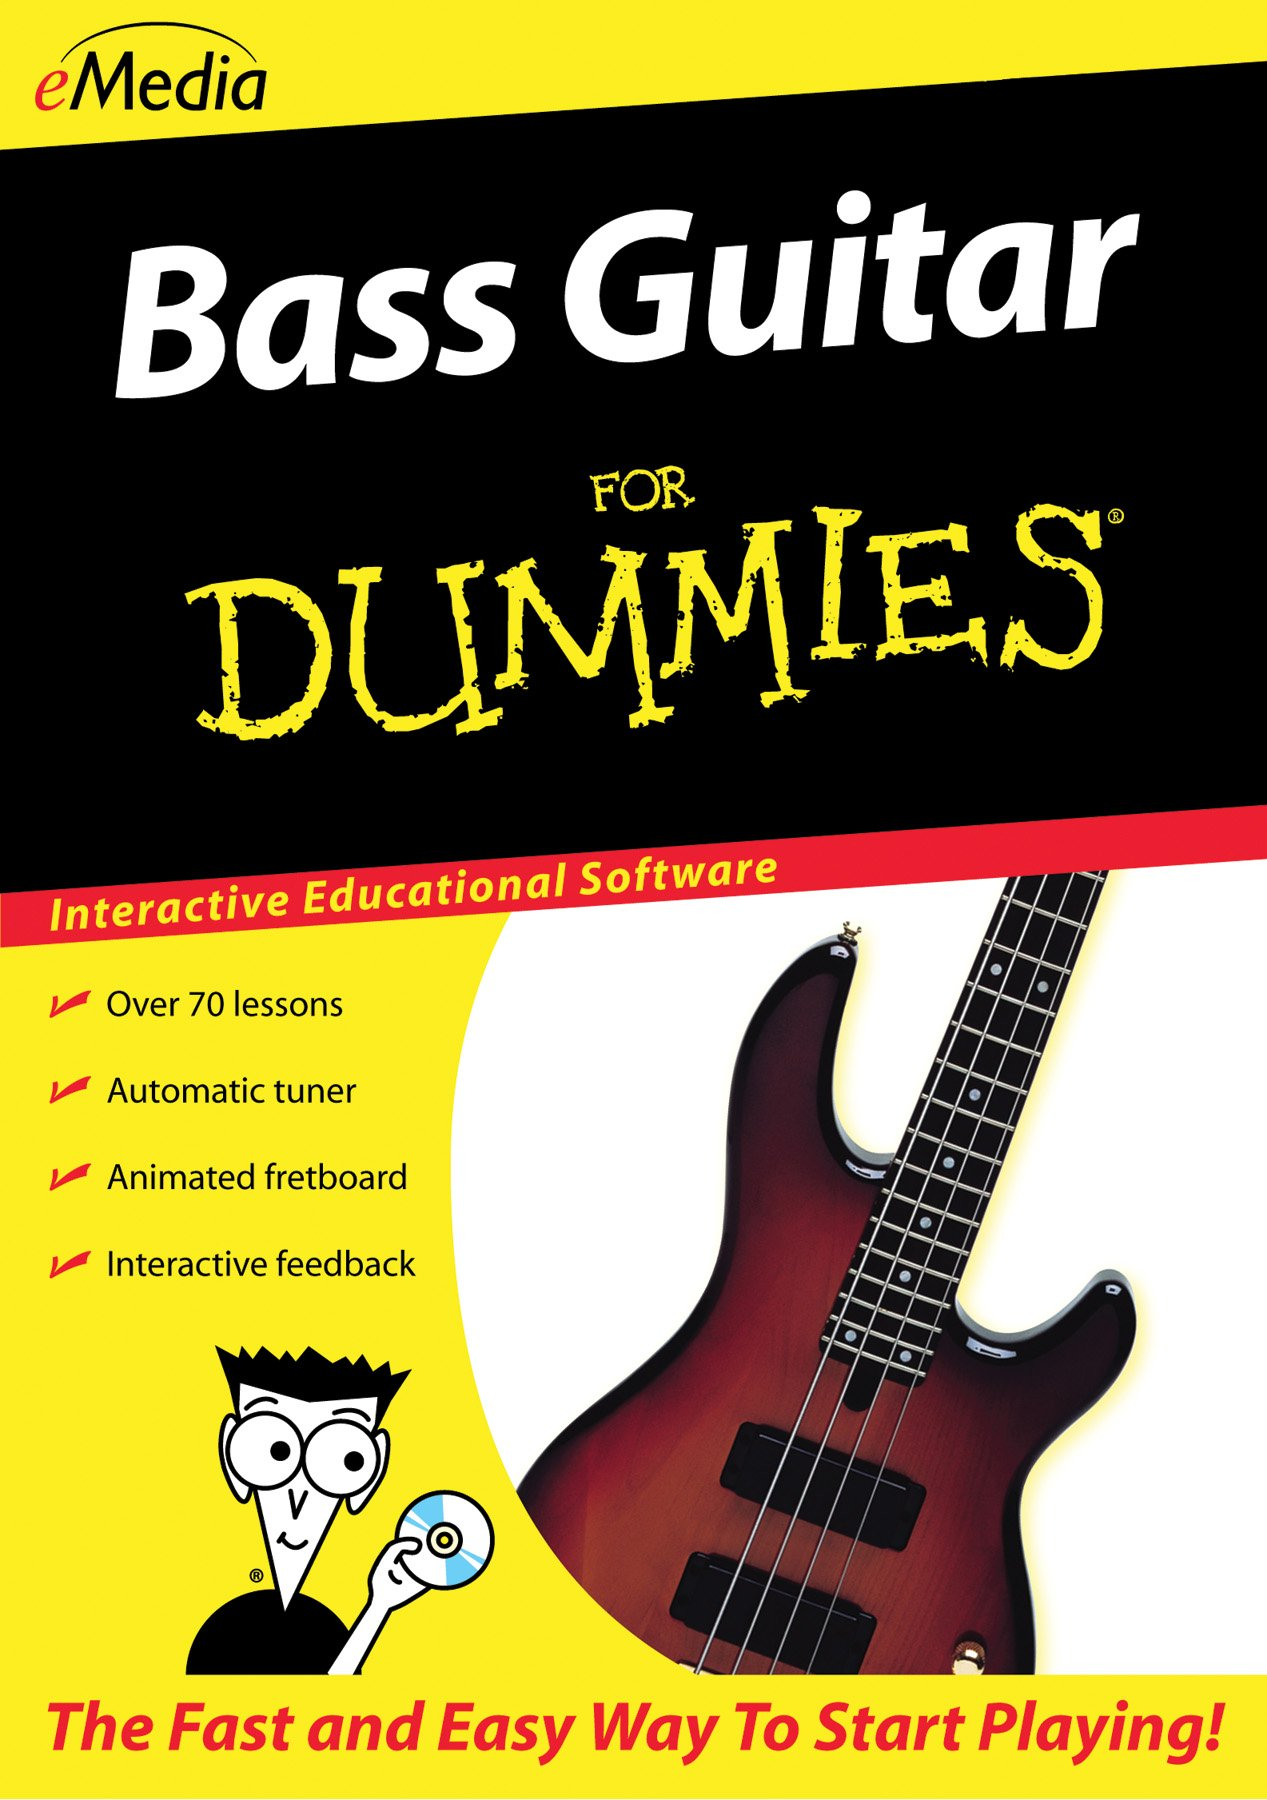 eMedia Bass Guitar For Dummies [PC Download] by eMedia Music